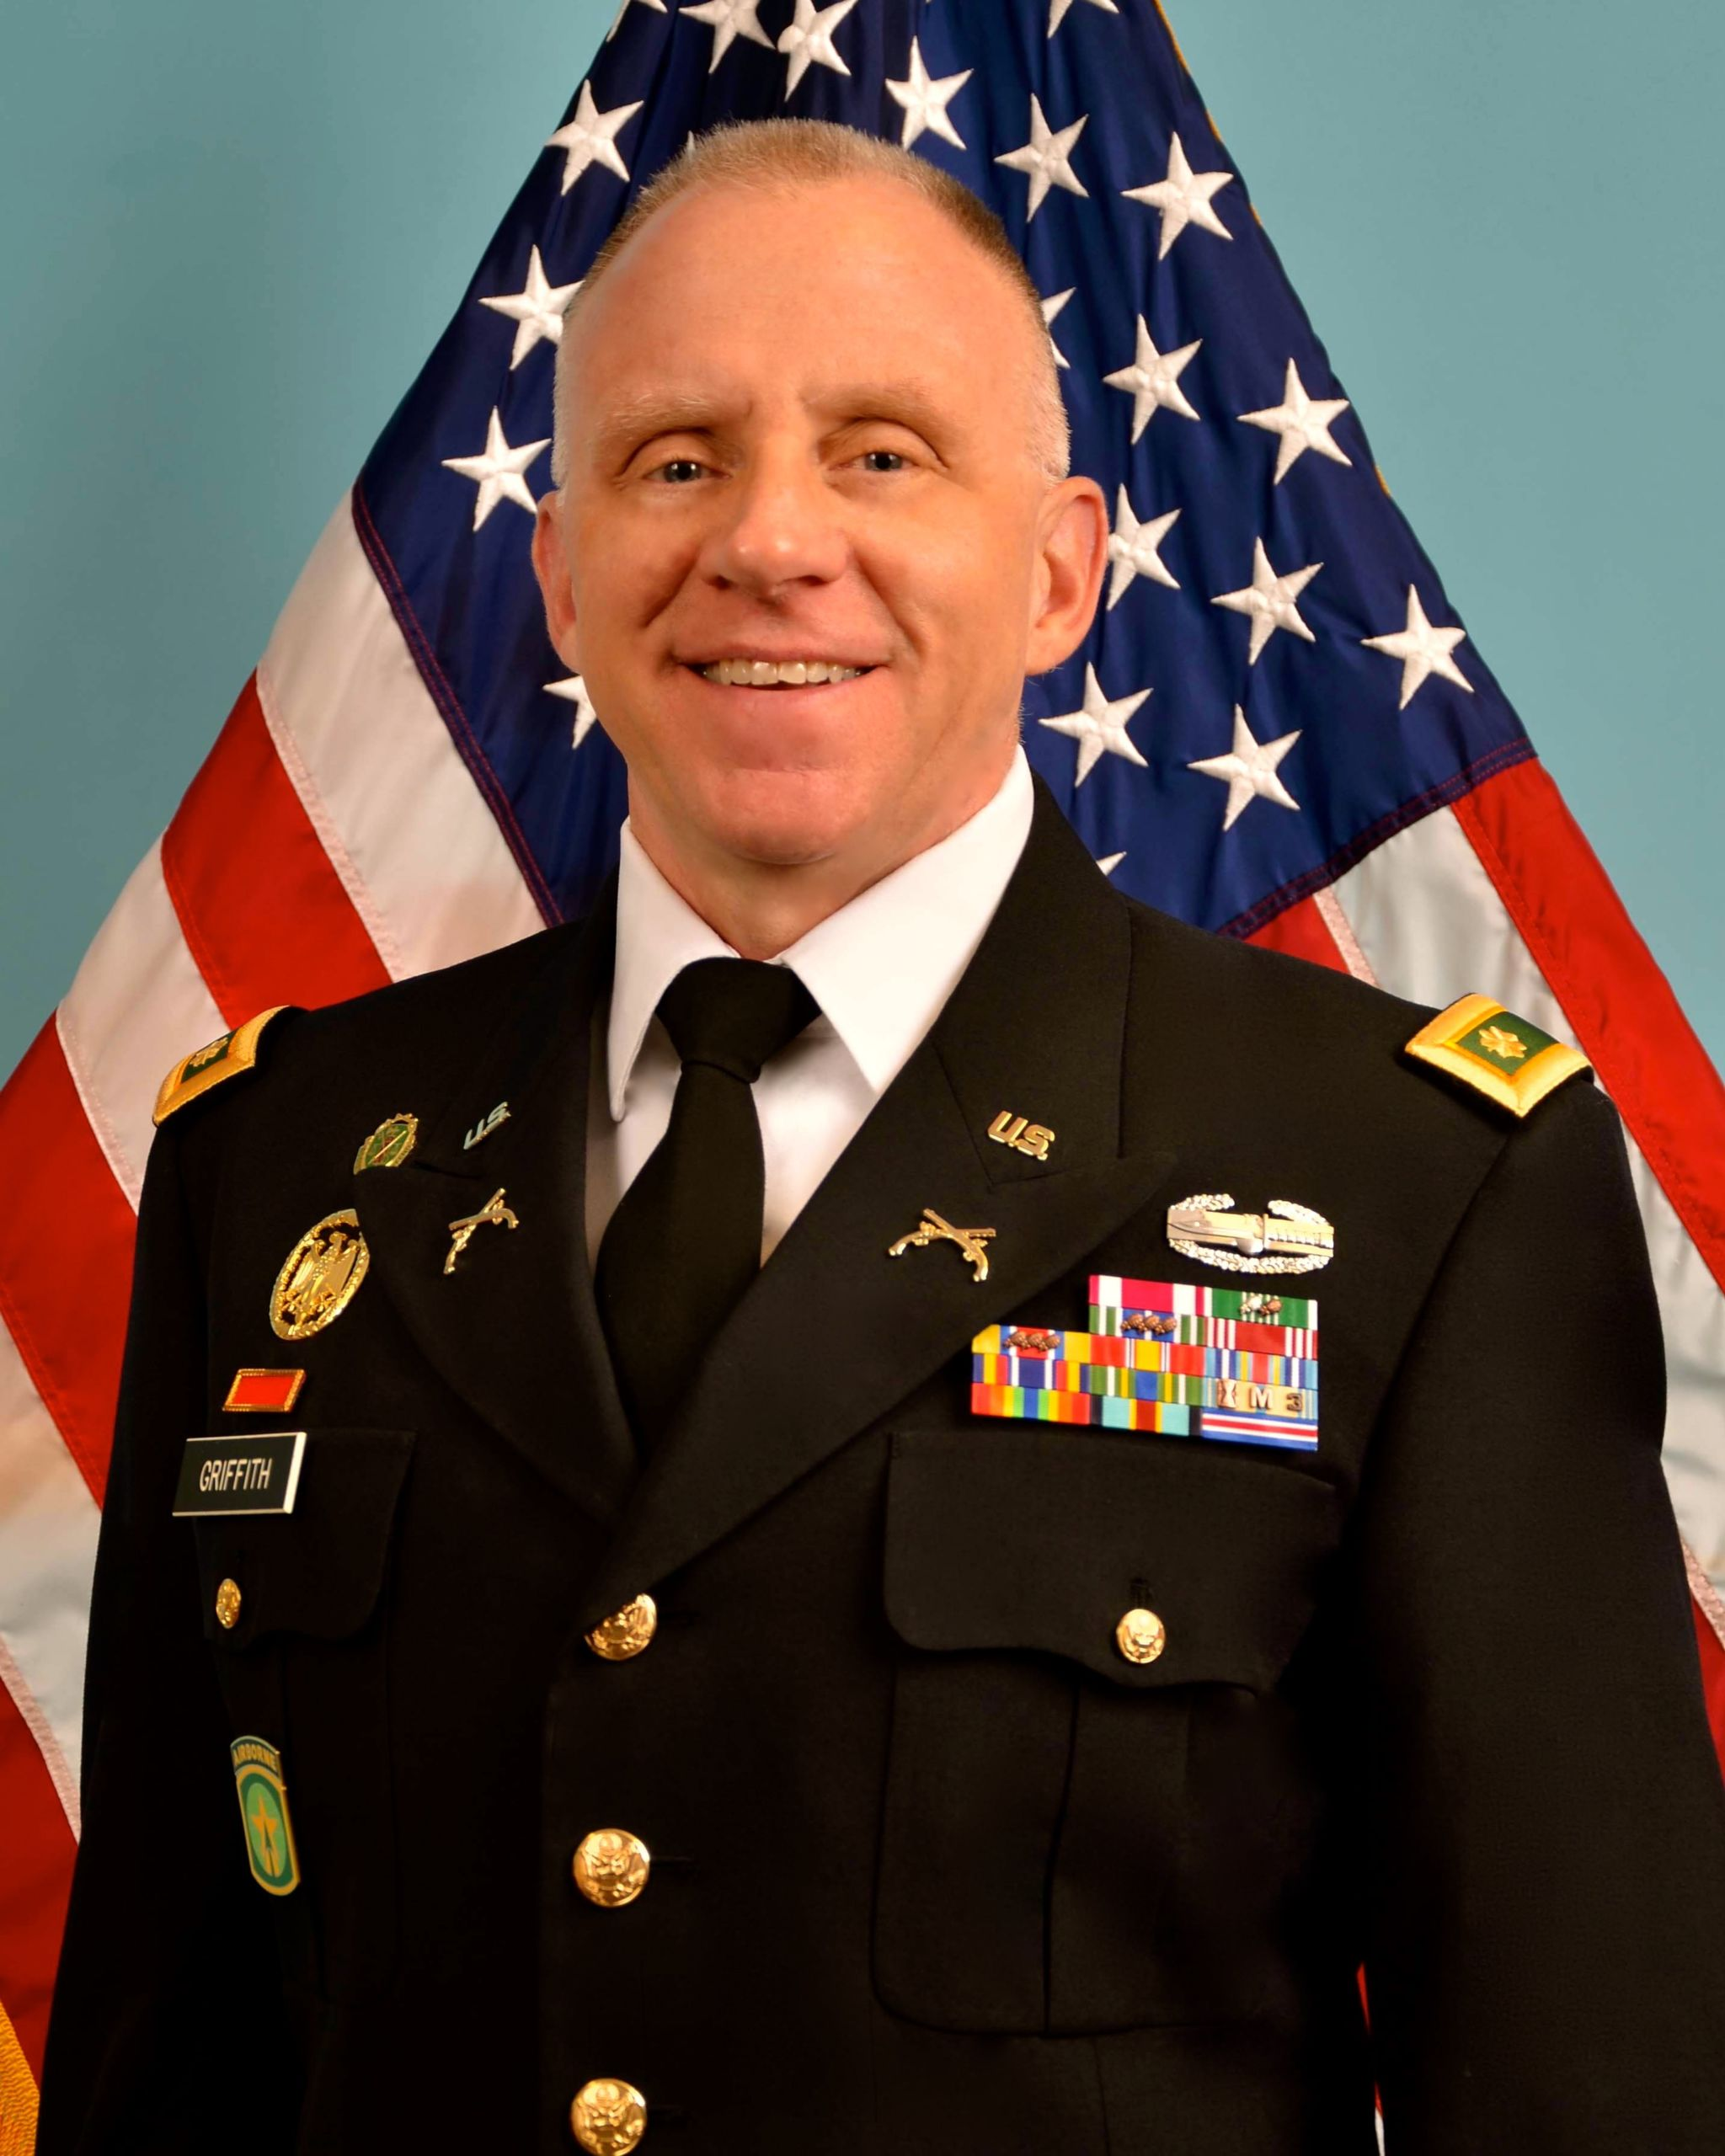 MAJ(R) Todd Griffith, US Army